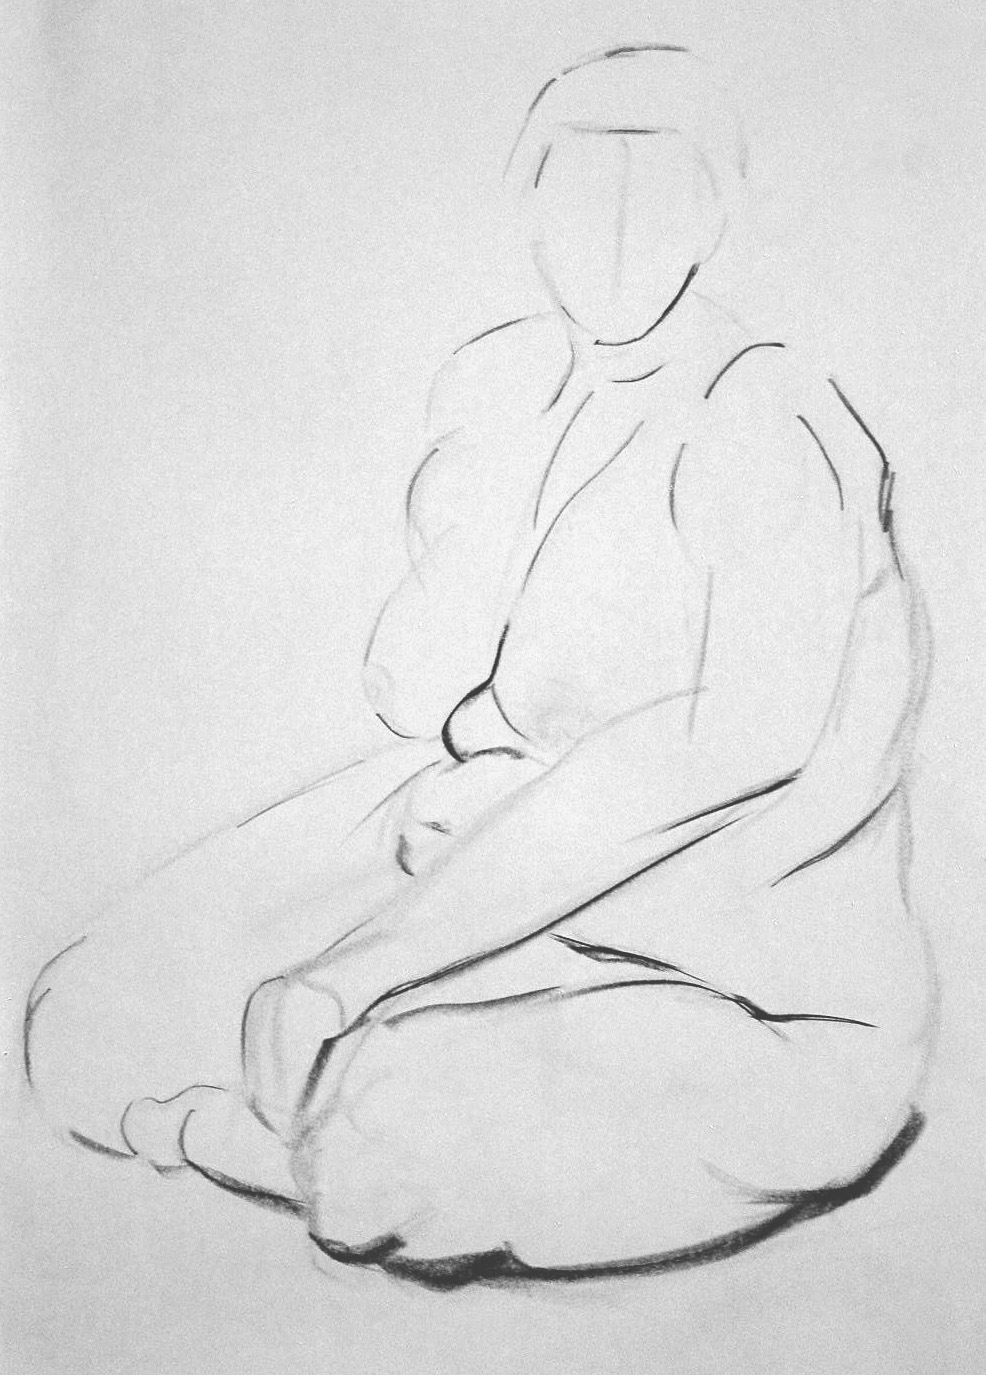 untitled (nude study), charcoal,2004